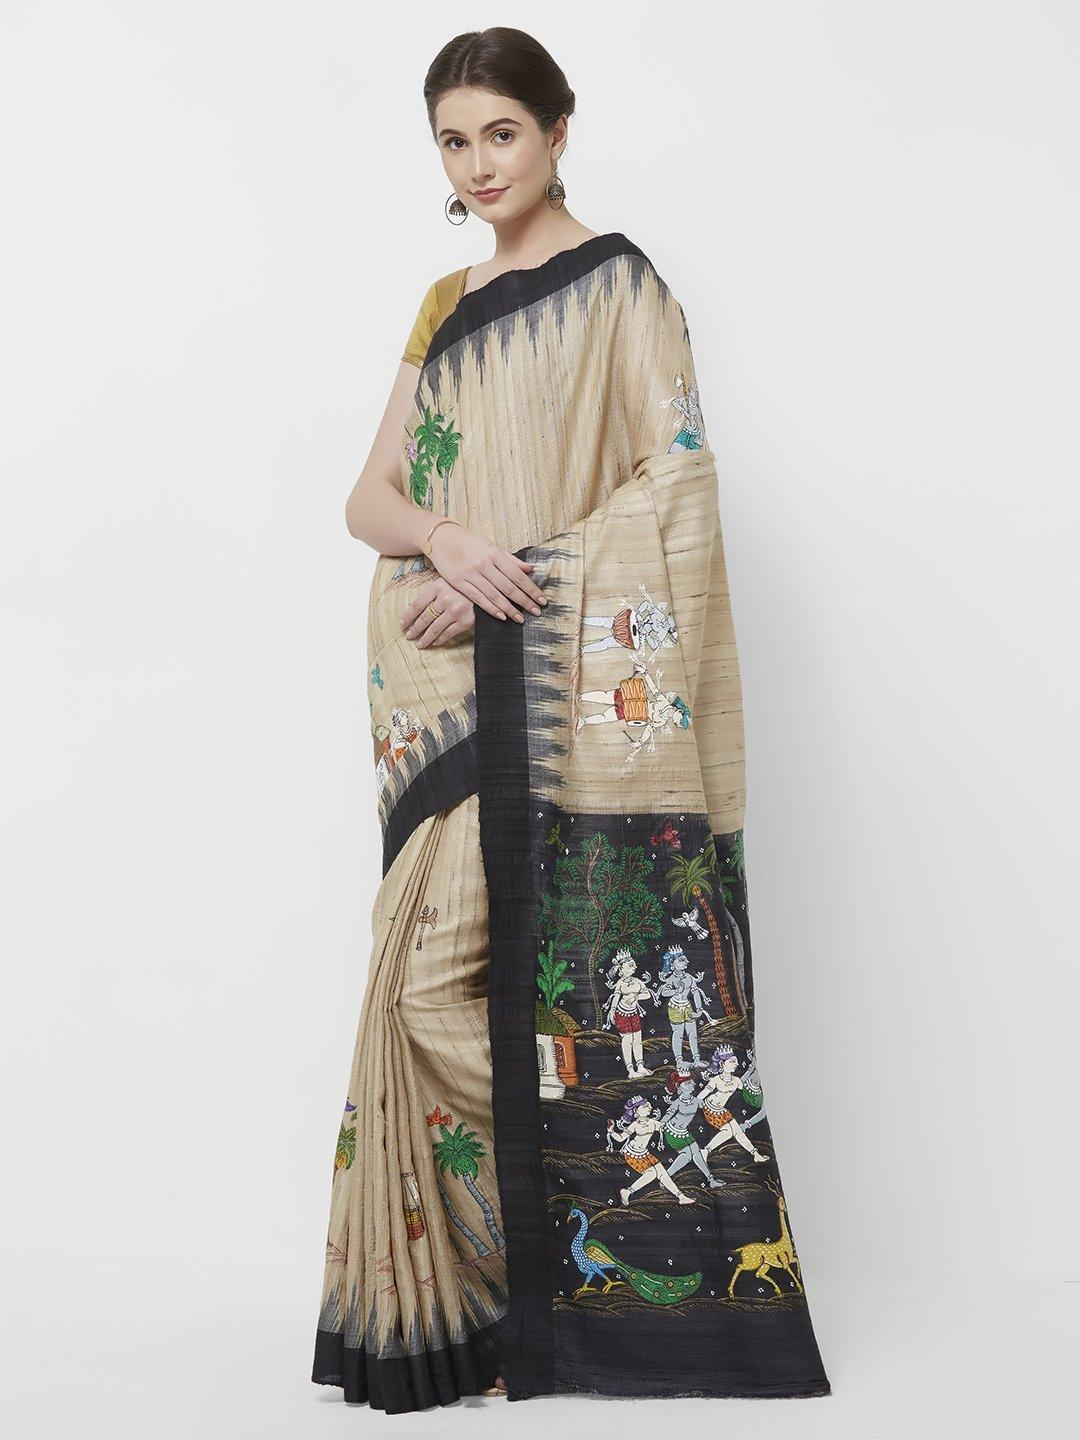 CraftsCollection.in -Beige Tusssar Ghicha Silk with handpainted Tribal art